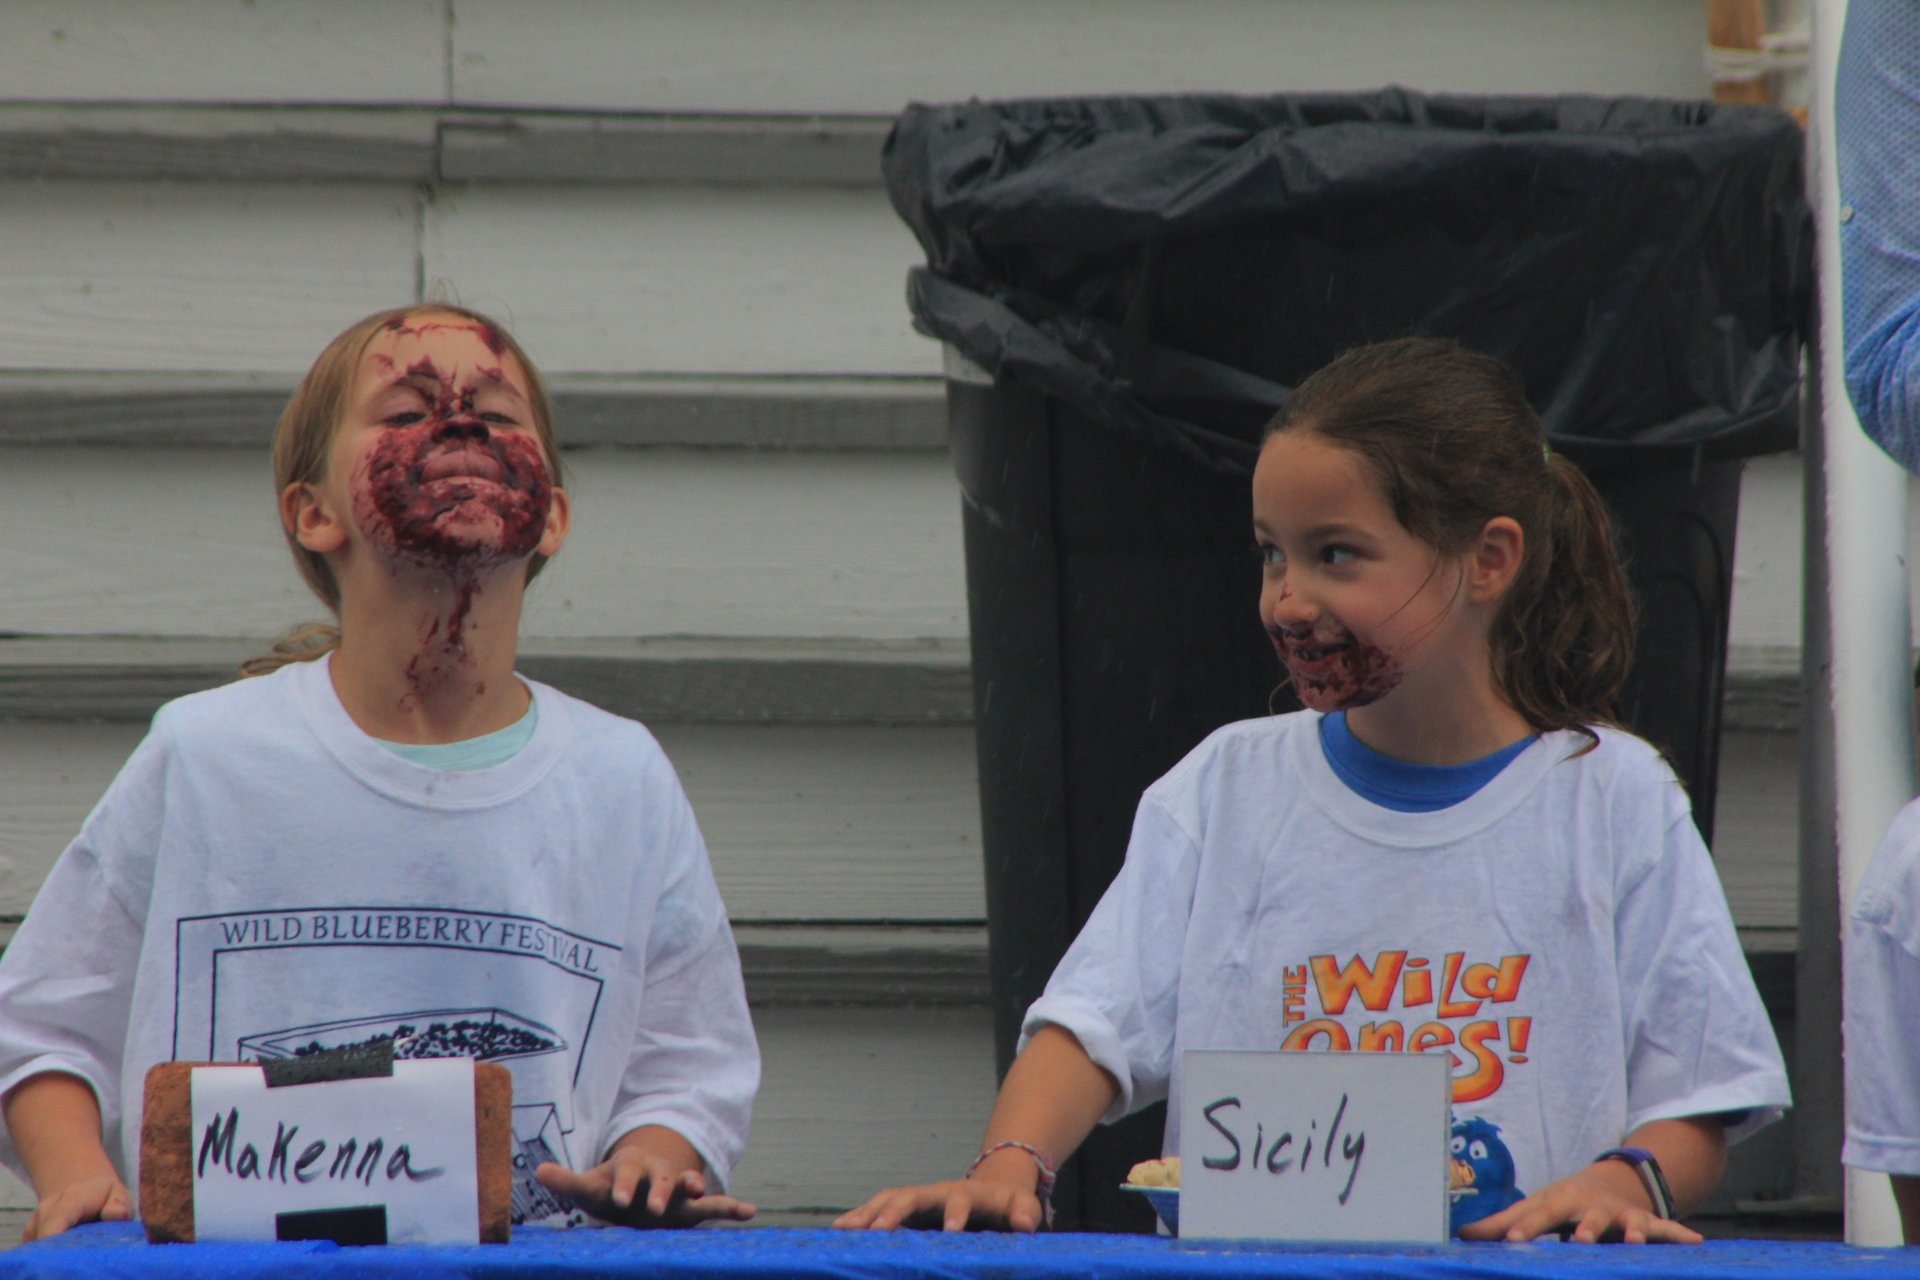 Pie eating contest 2020